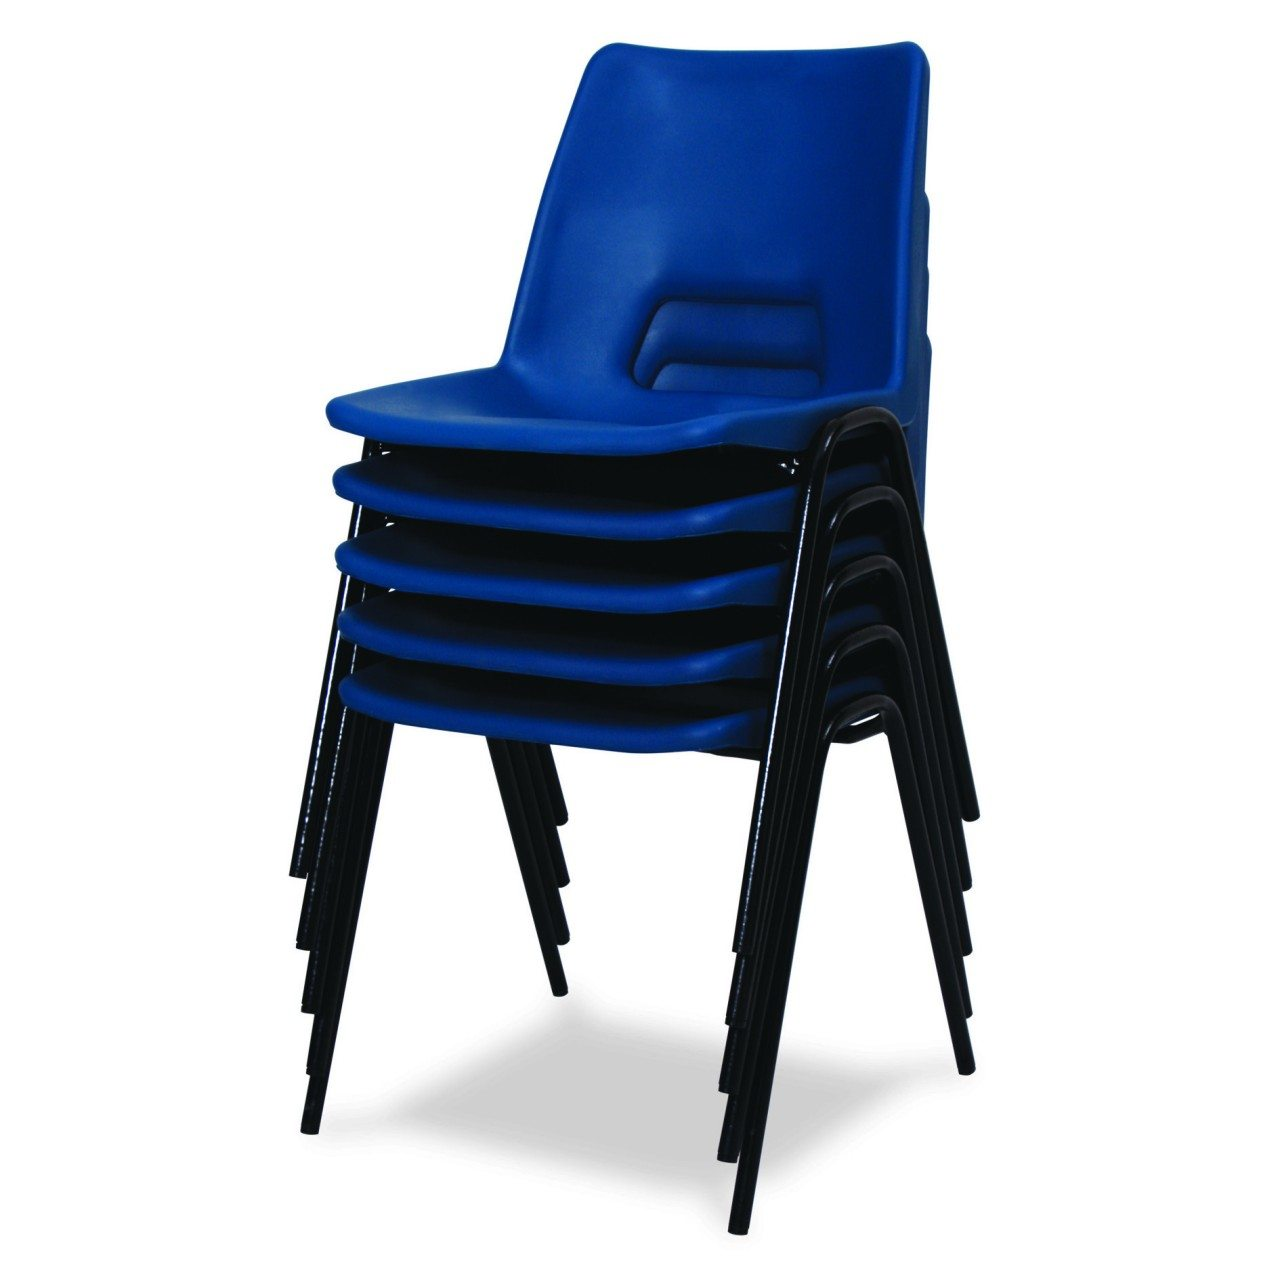 Poly Stacking Chair Adult From 163 14 50 Grace Church